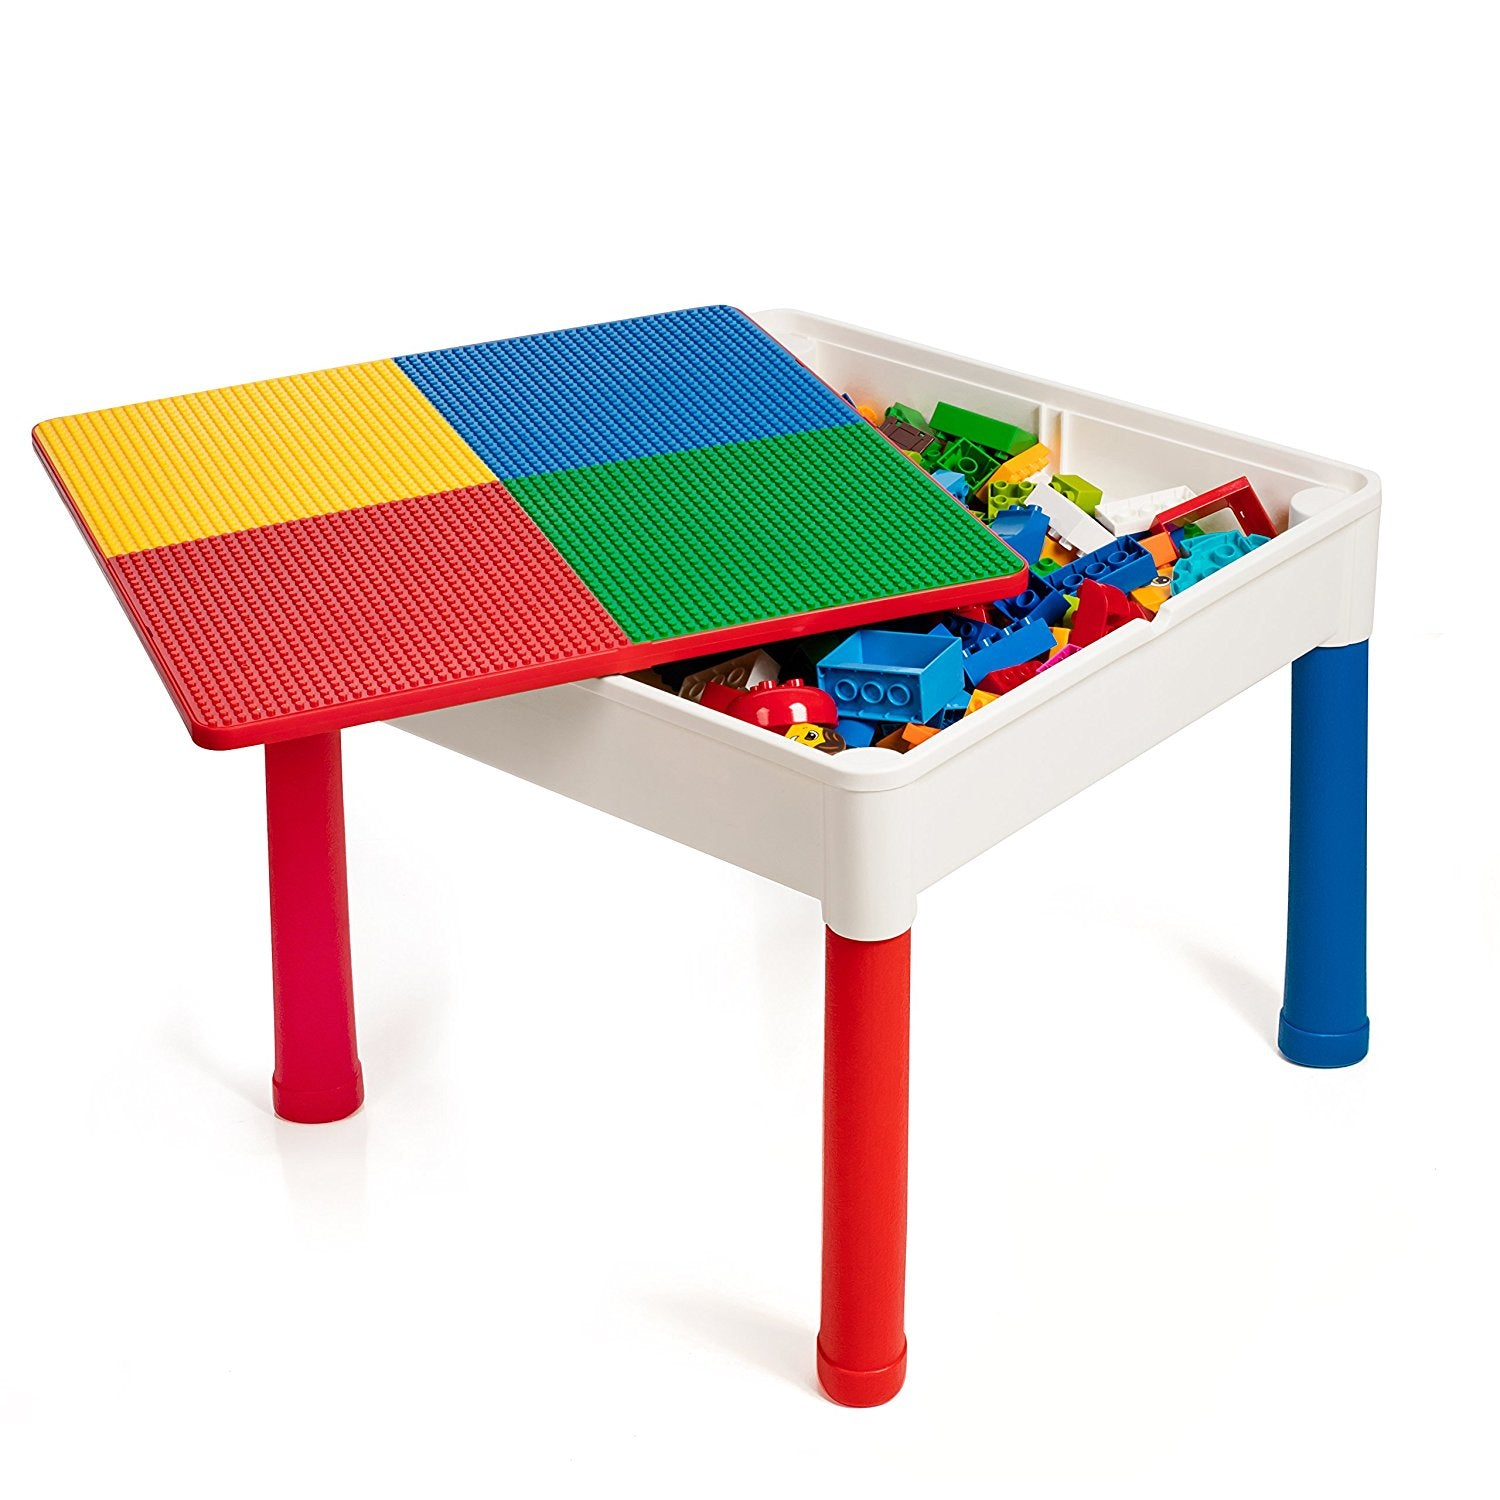 ... Smart Builder Toys Kids 2 In 1 Duplo And Lego Compatible Table With  Large Storage Area ...